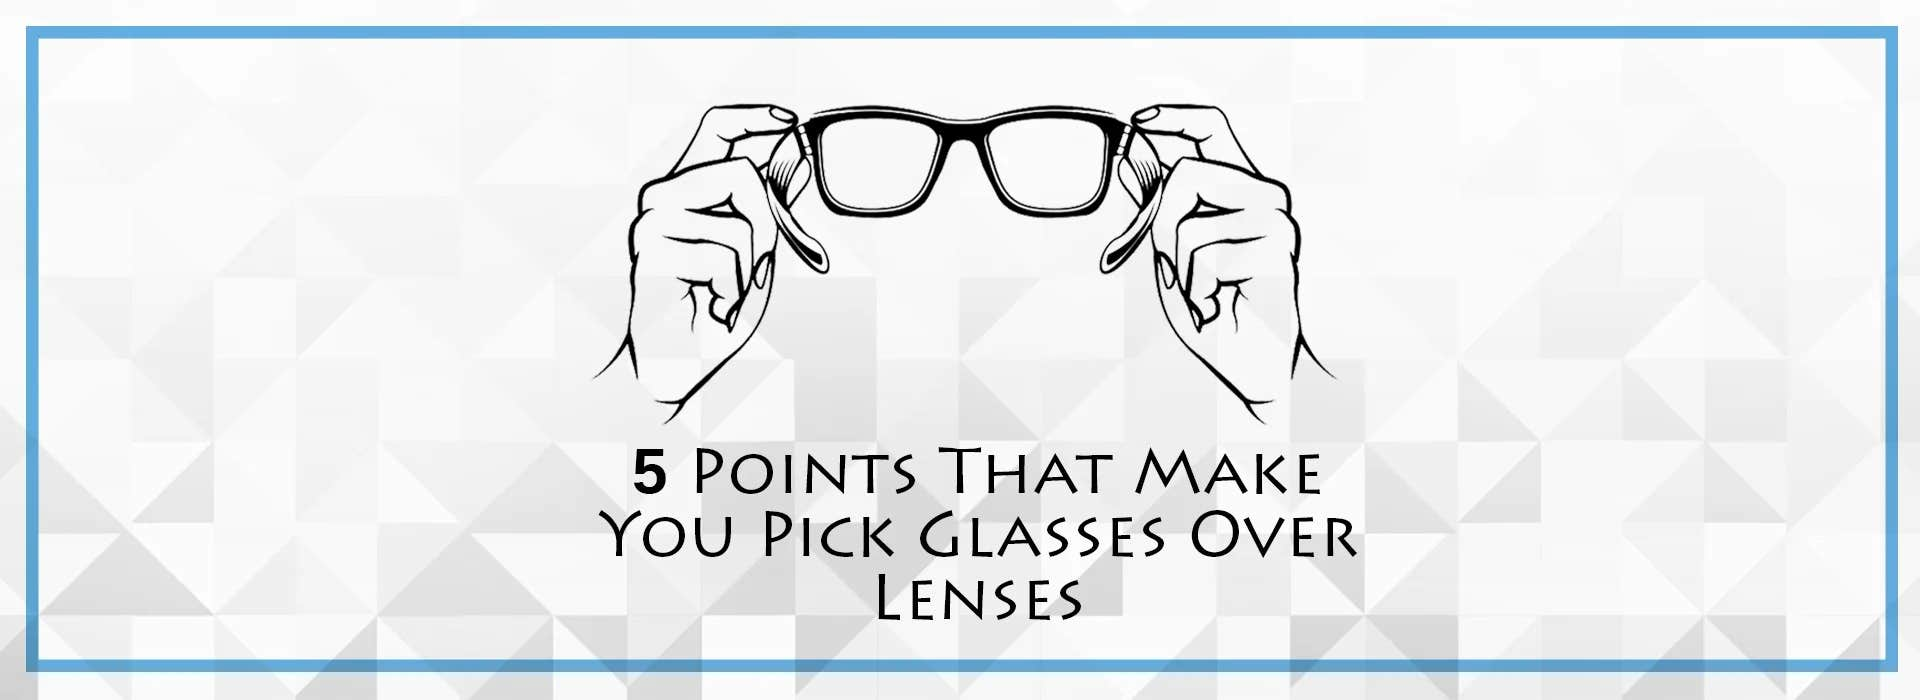 5 Points That Make You Pick Glasses Over Lenses